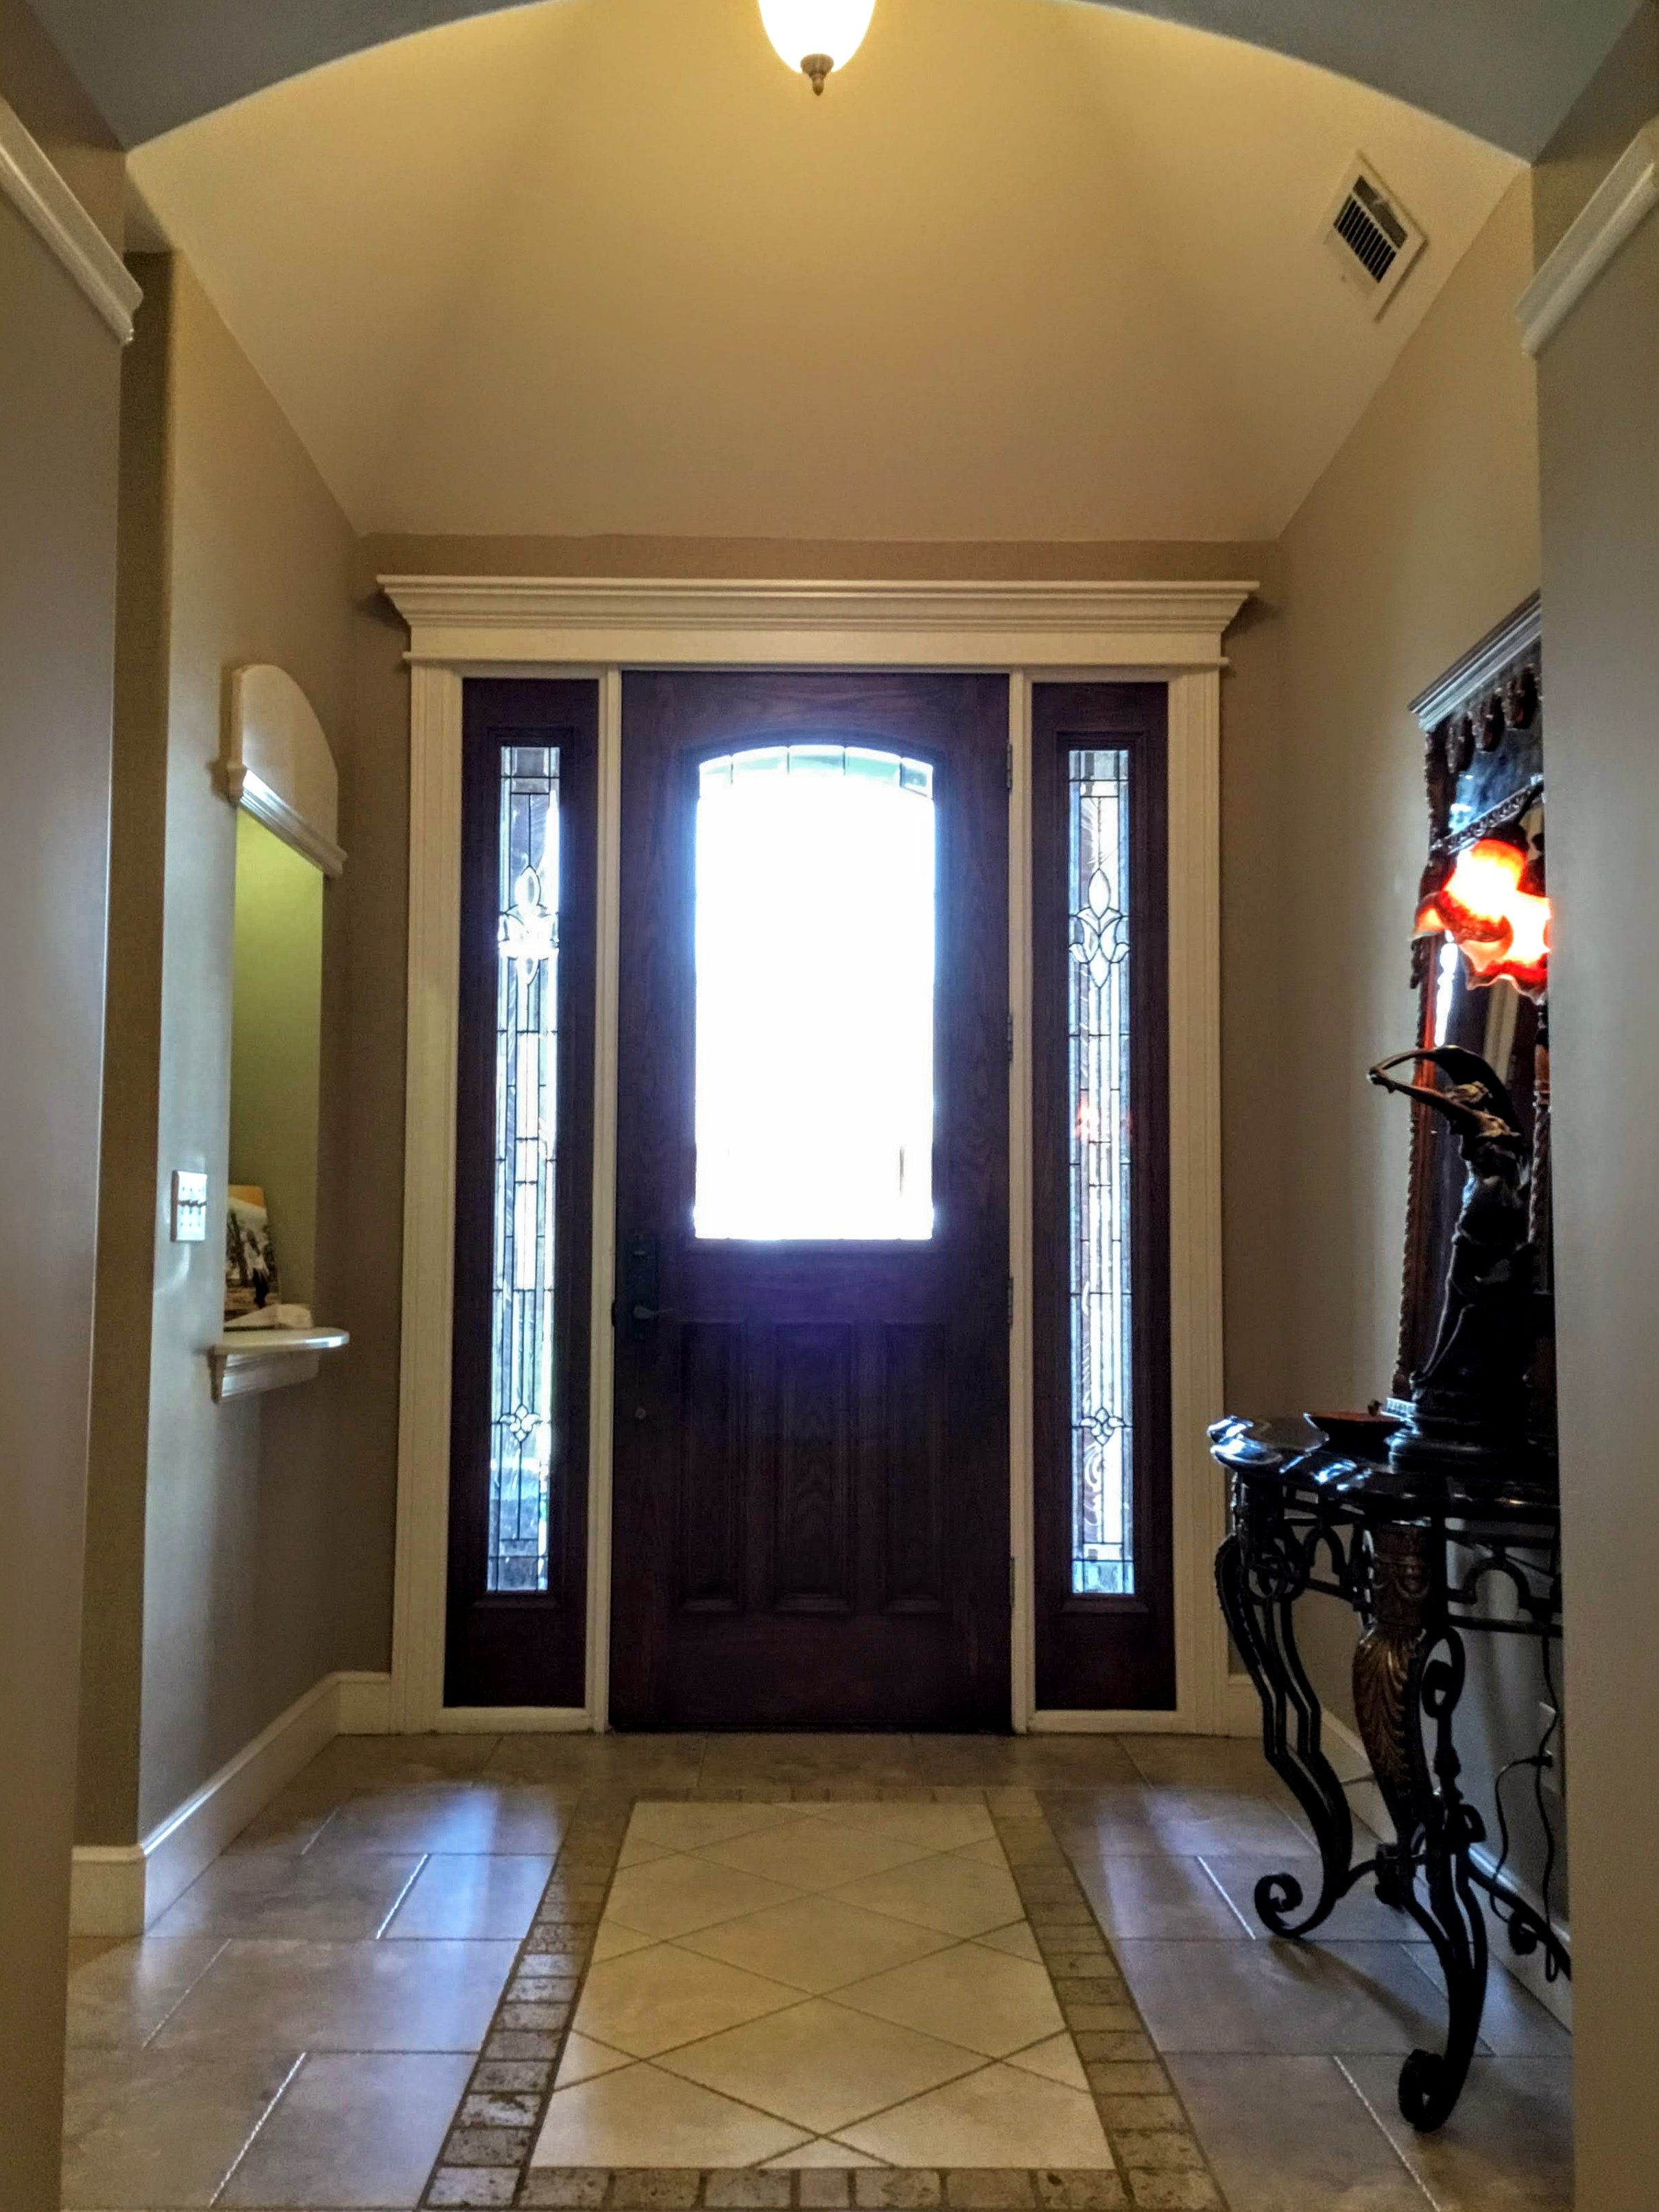 Staging Tulsa - Zarrow Pointe Villas Entry Door.jpg